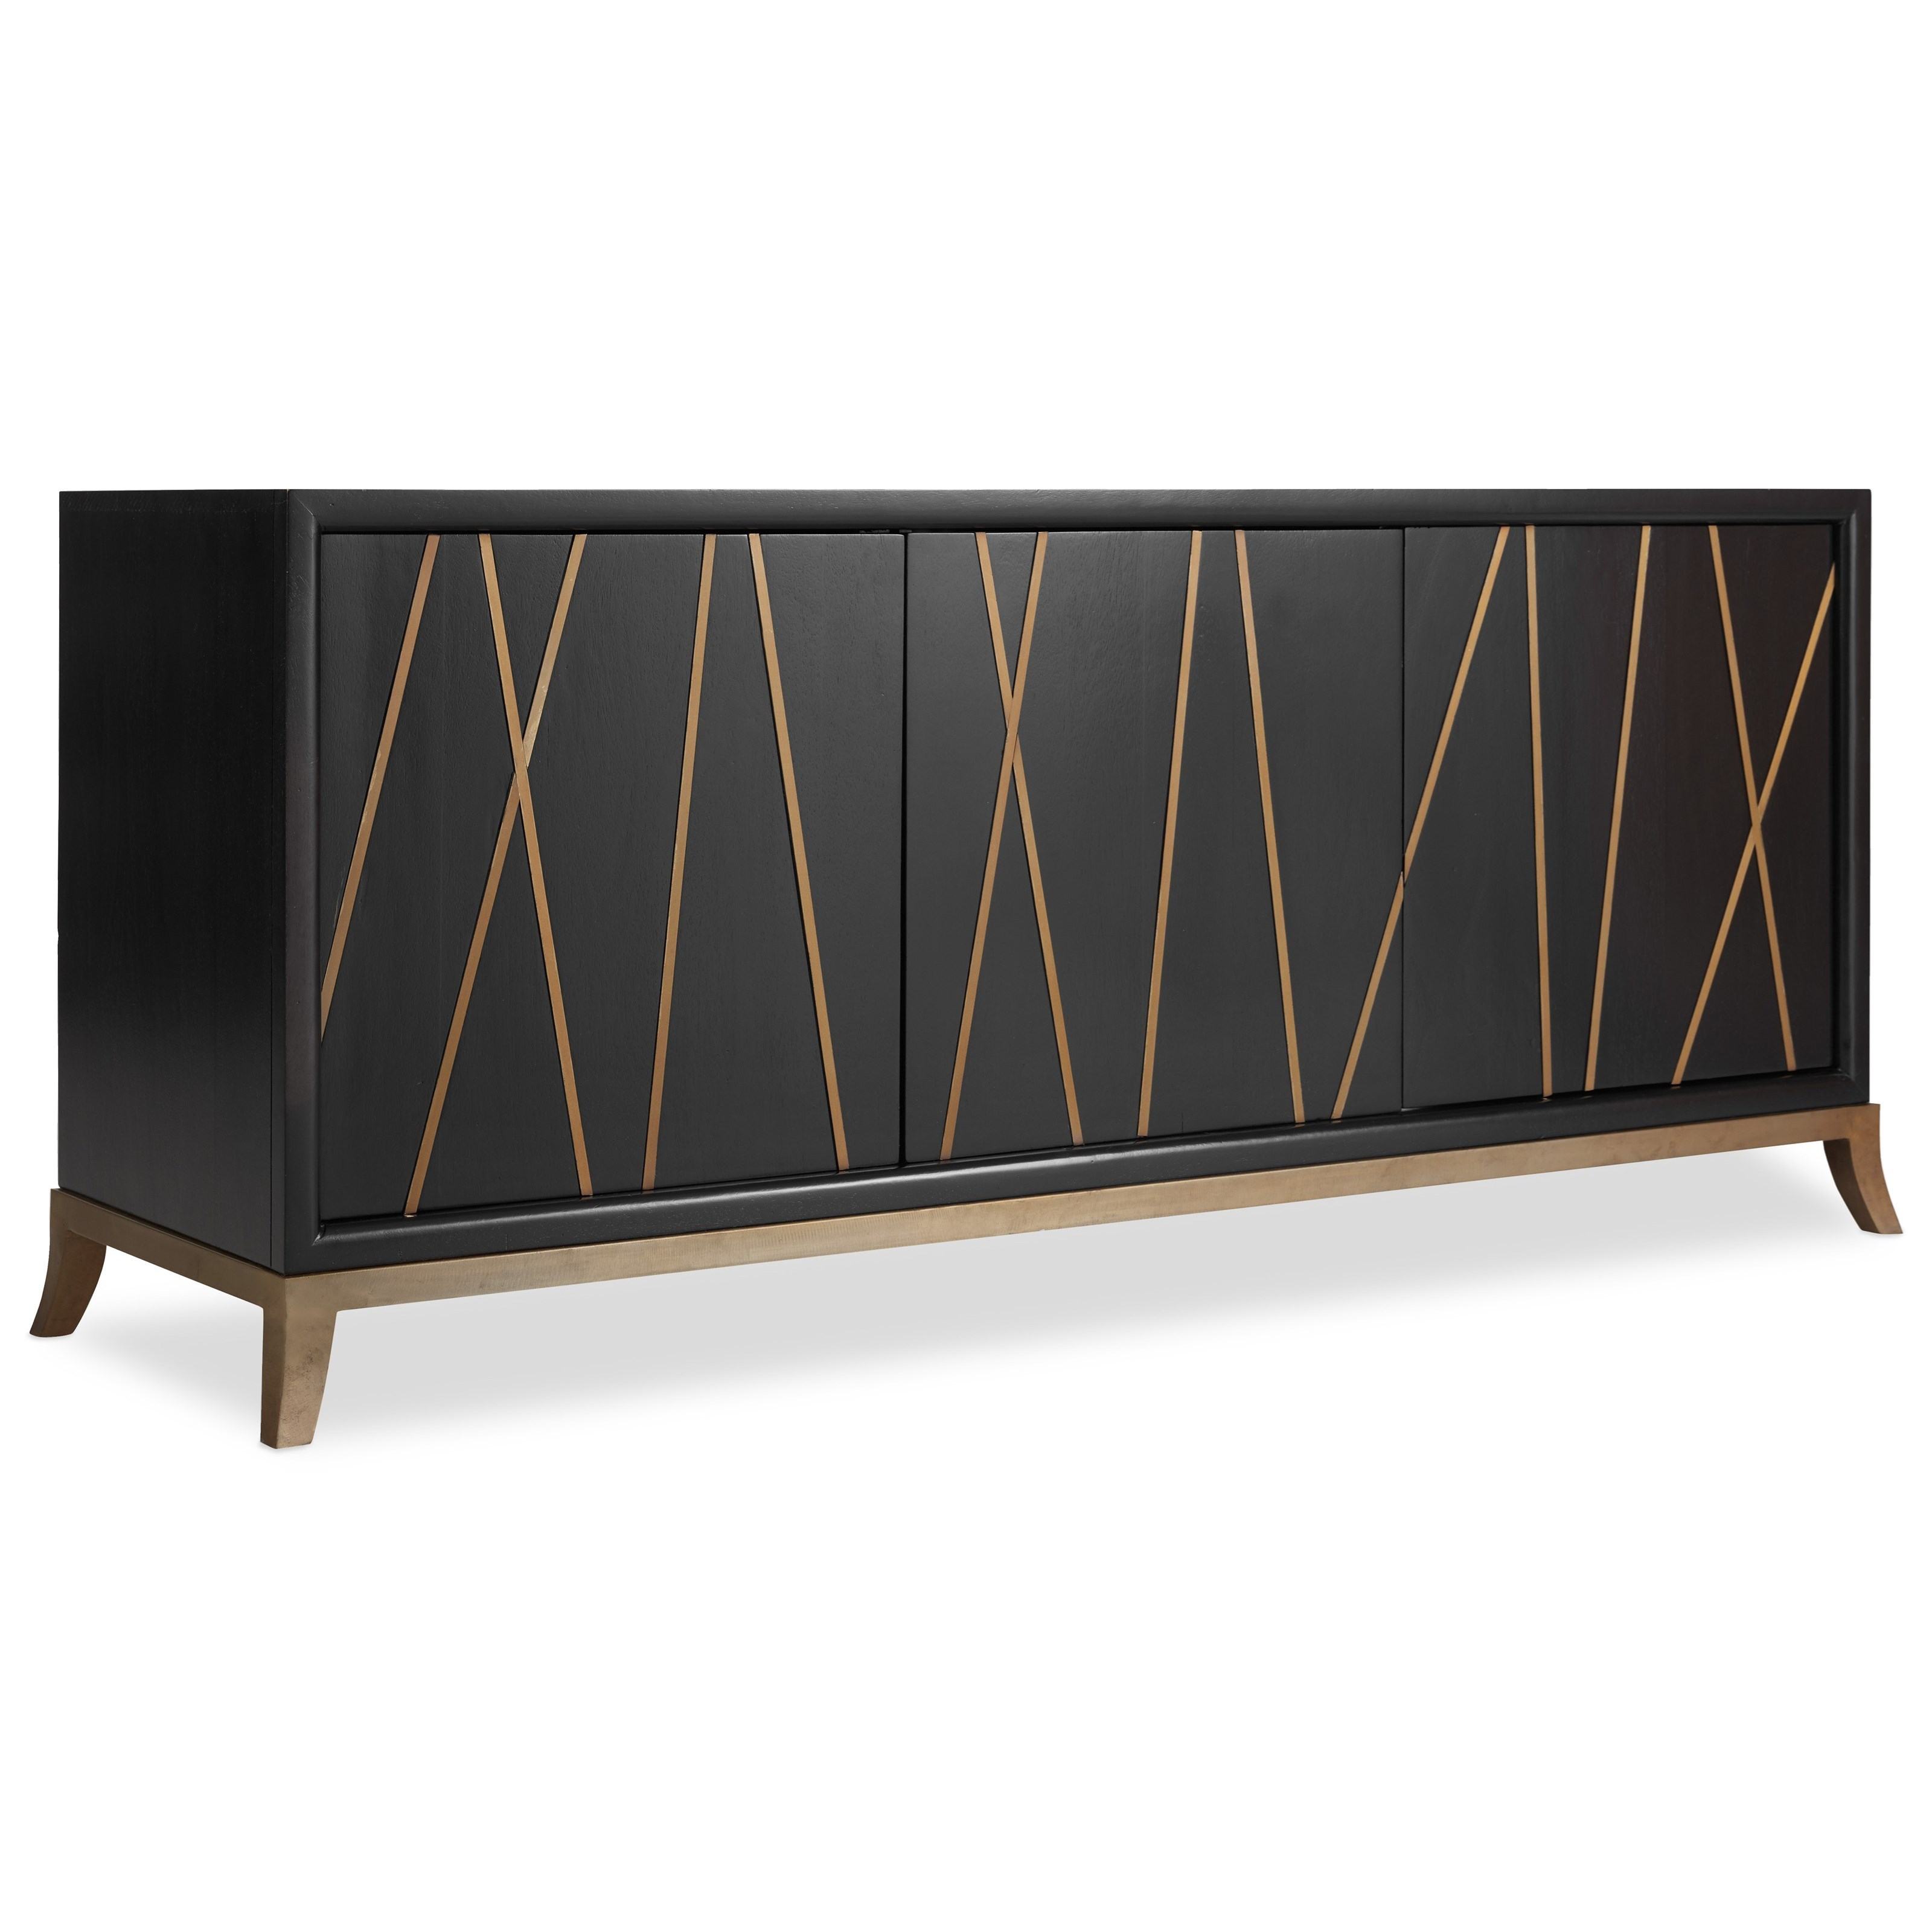 Living Room Accents 64 Inch Entertainment Console by Hooker Furniture at Fashion Furniture